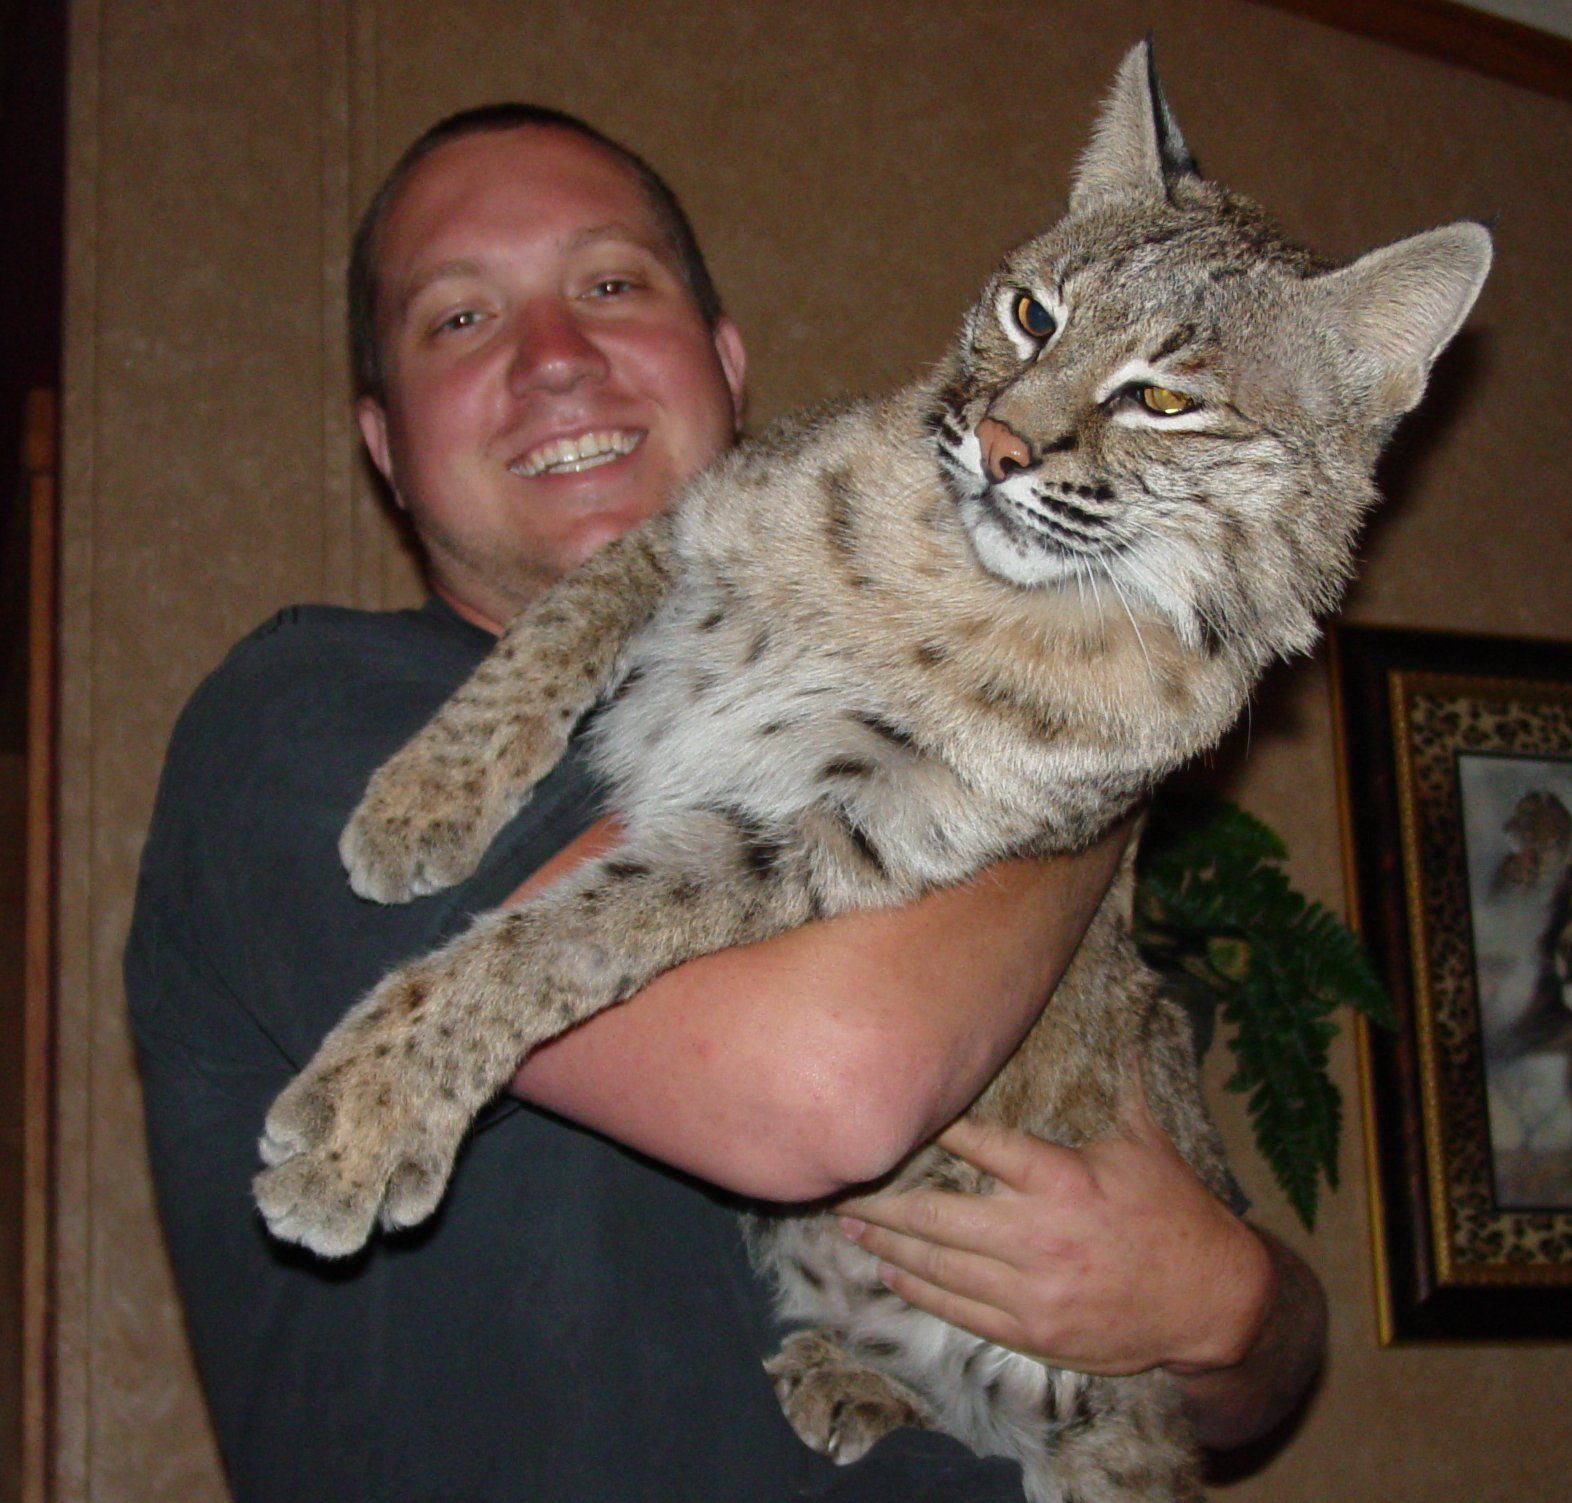 Man in Indiana gets extremely rare footage of a Bobcat in